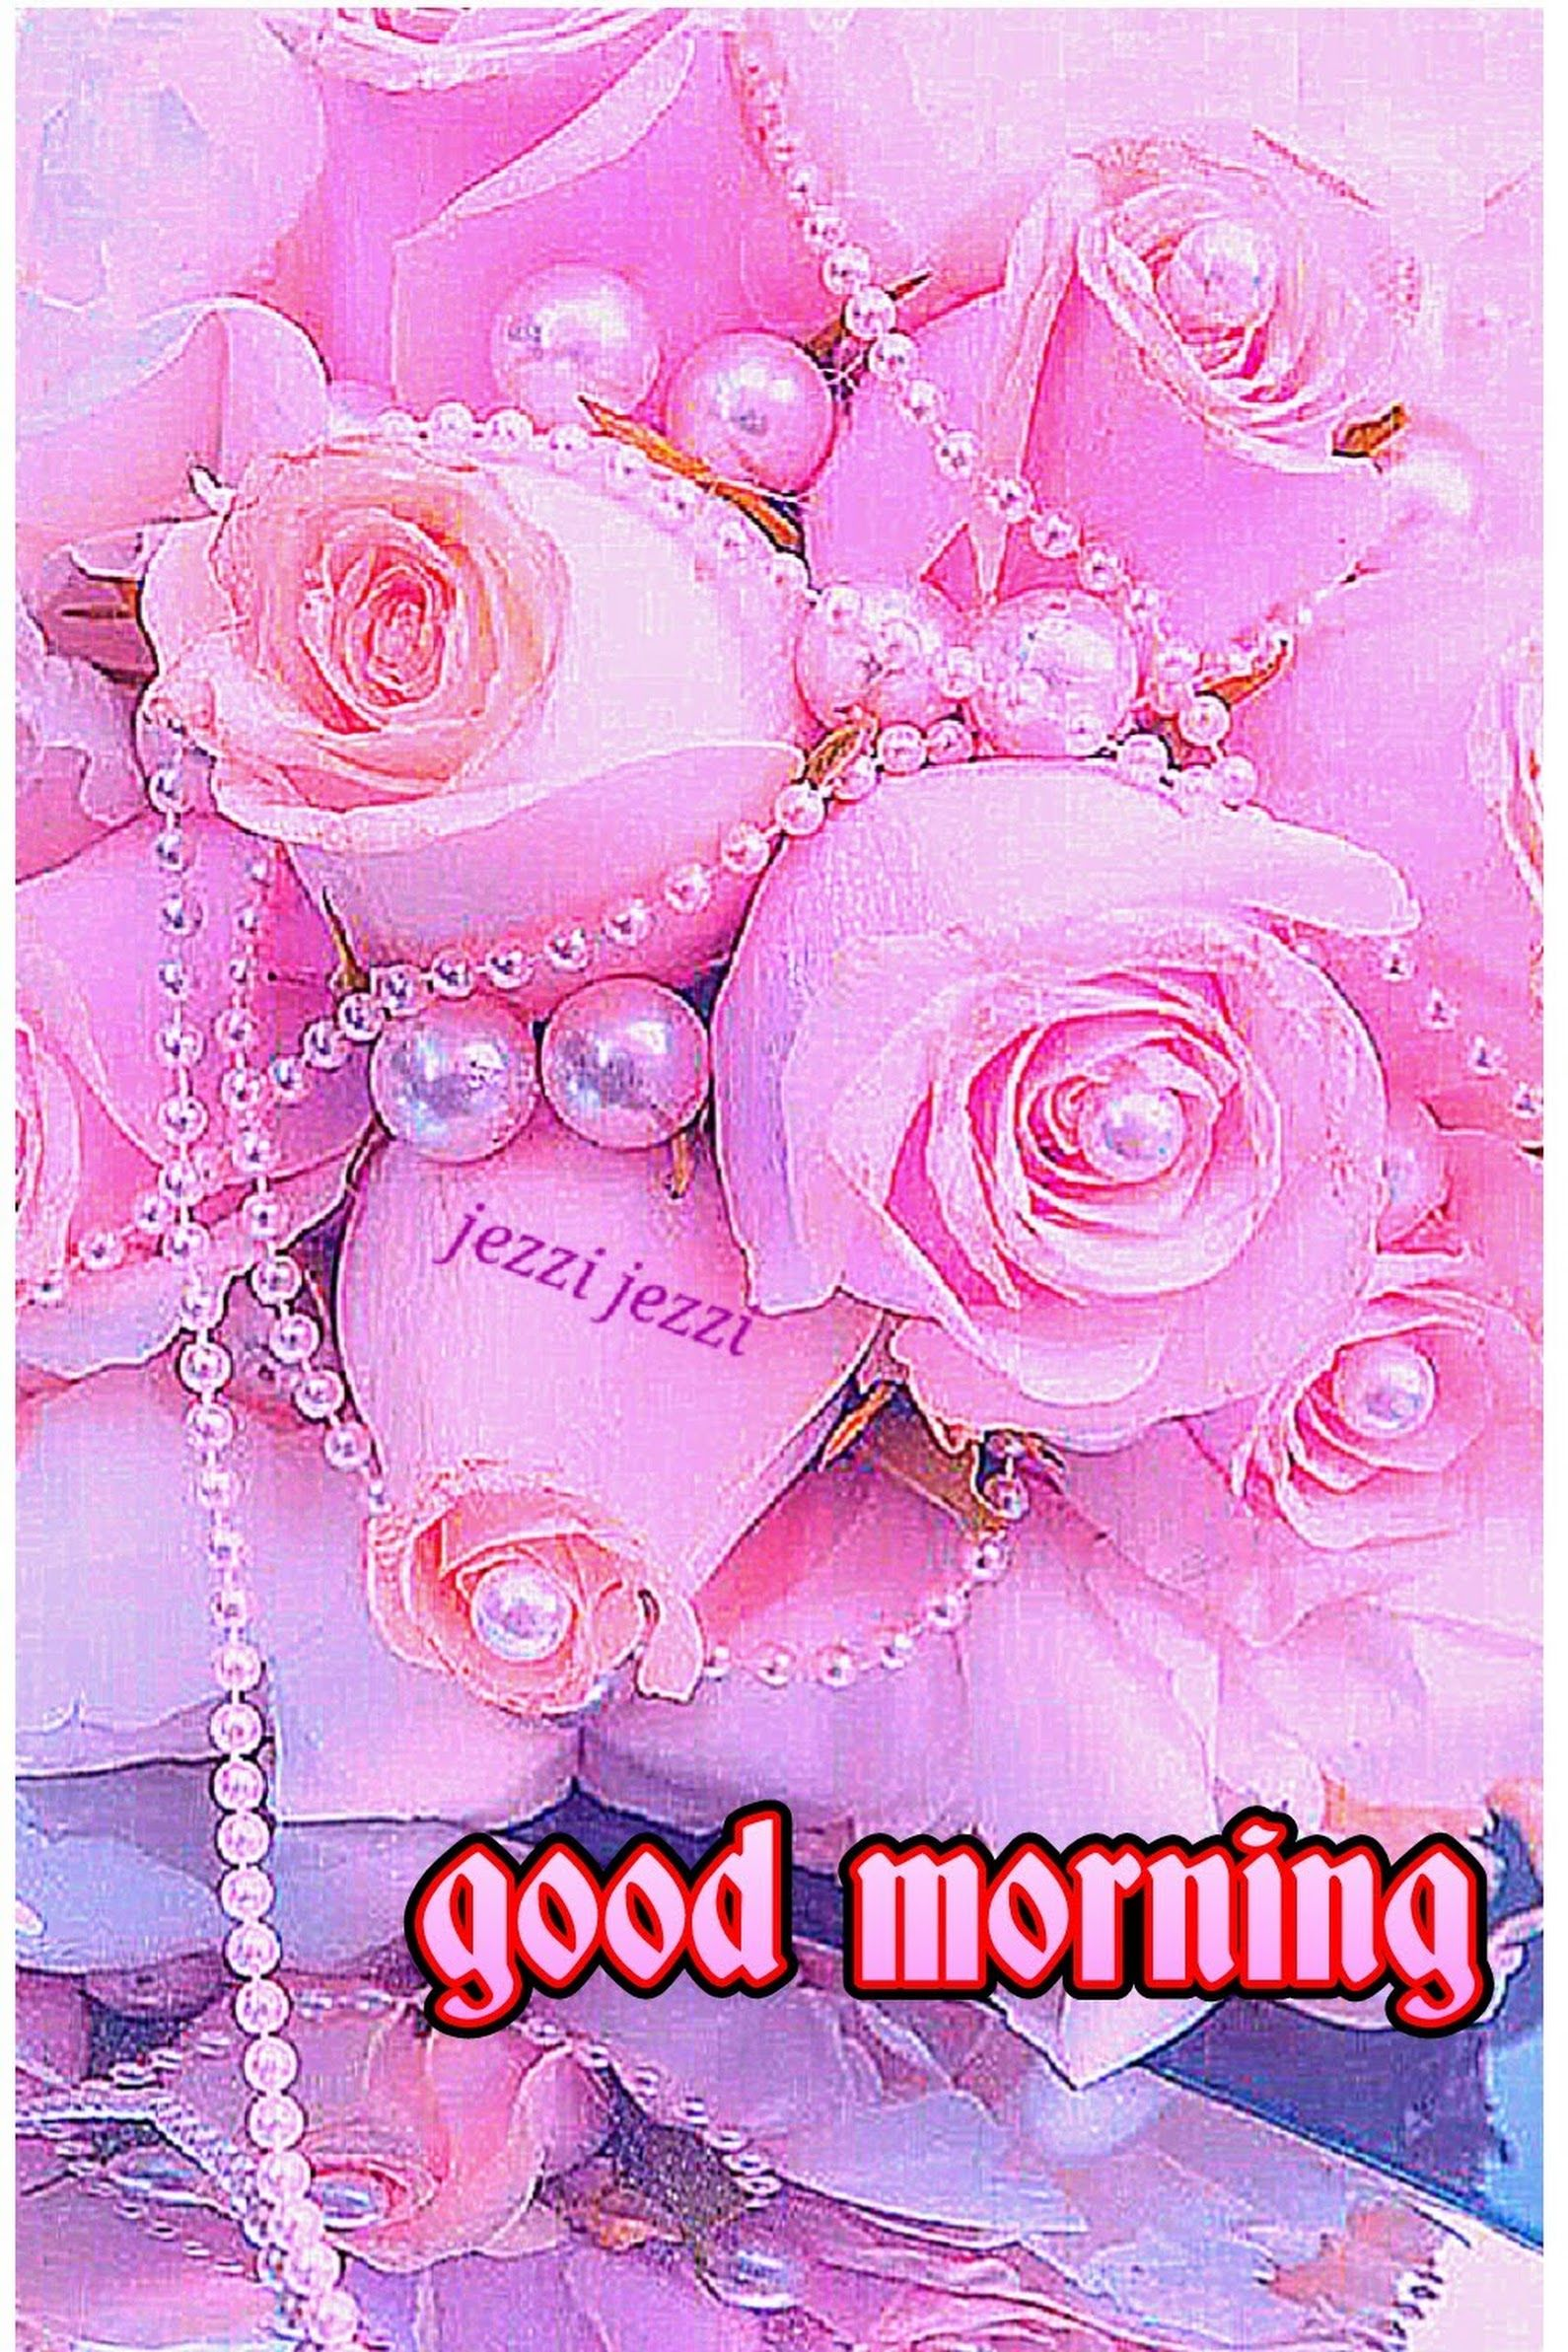 Good Morning Sister And Yours Have A Lovely Friday And A Great